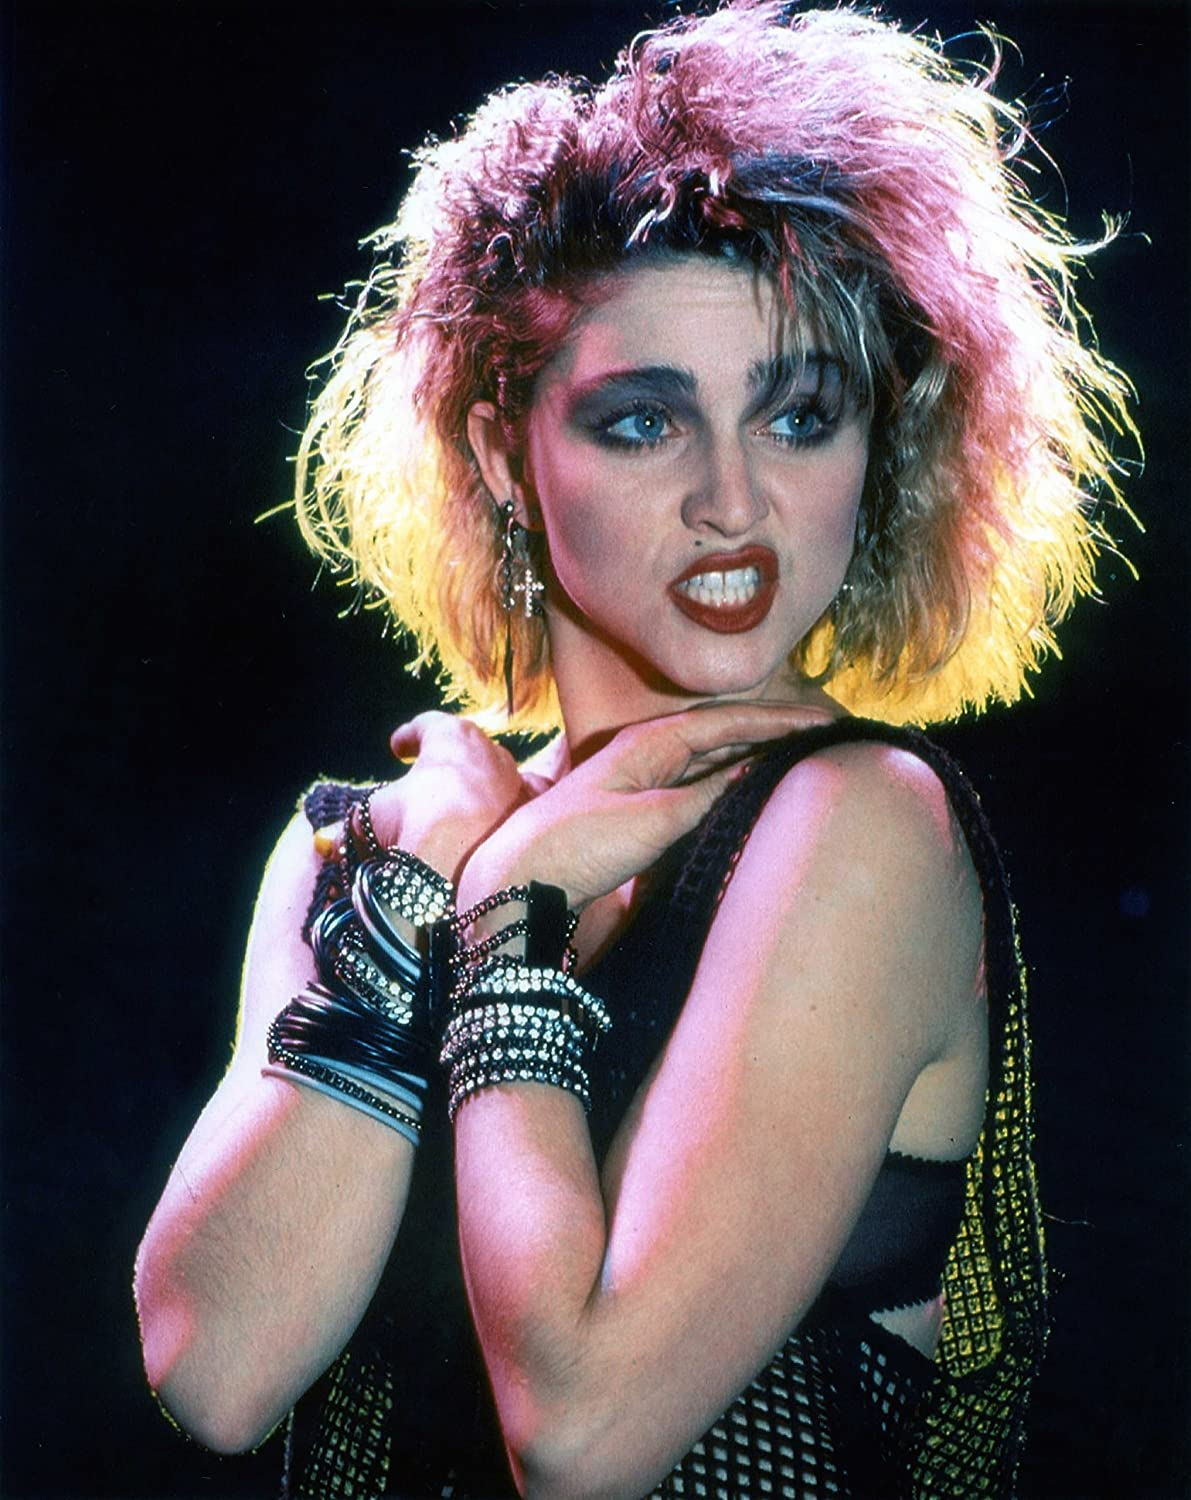 Madonna Early Poster 1980s Poster Size 117 X 165 297mm X 420mm